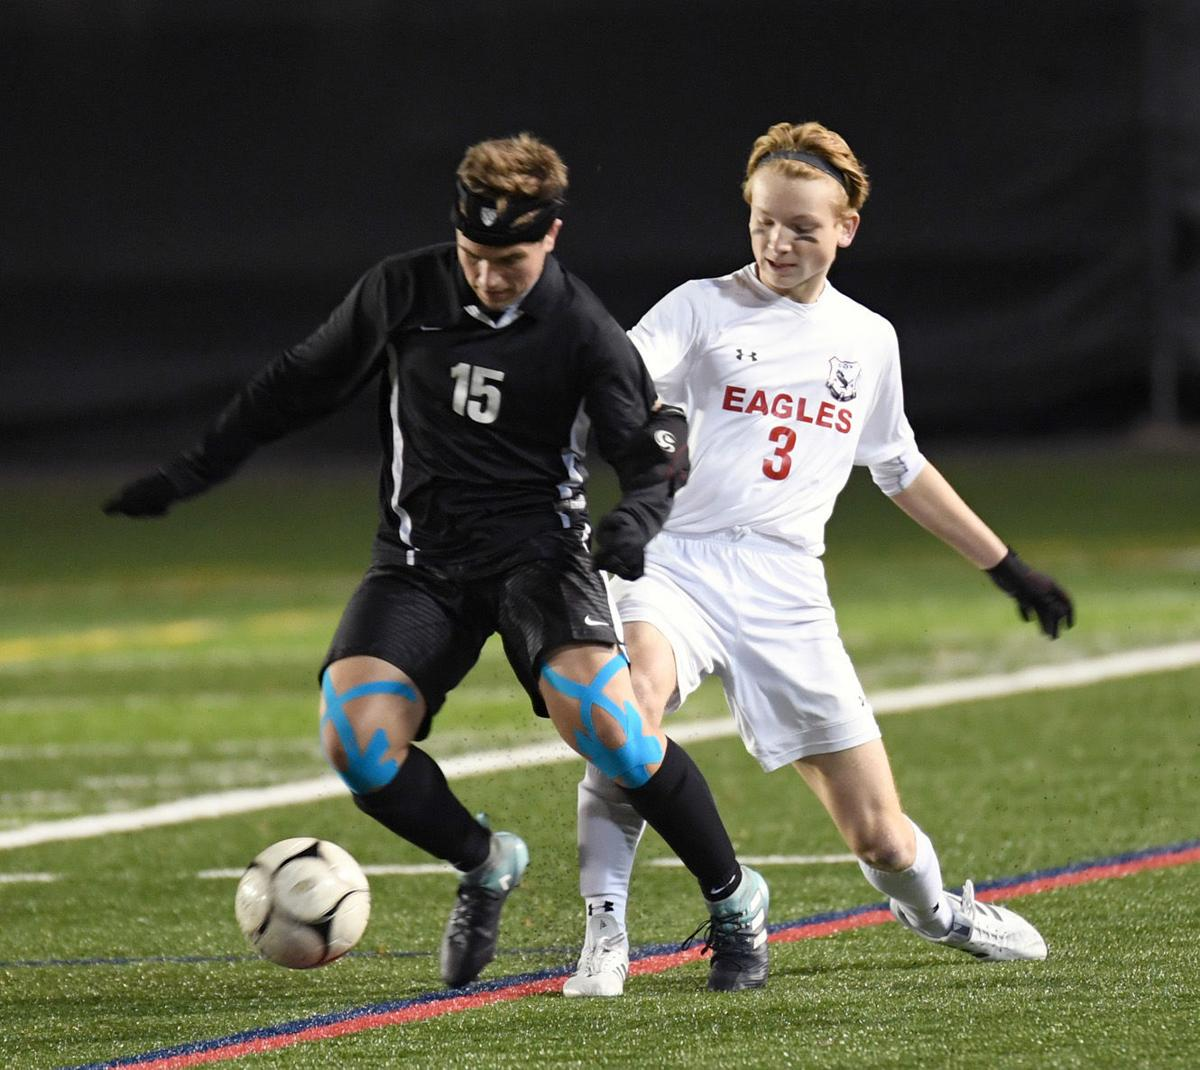 District 3 Boys Soccer Championship: Cumberland Valley vs. Hempfield